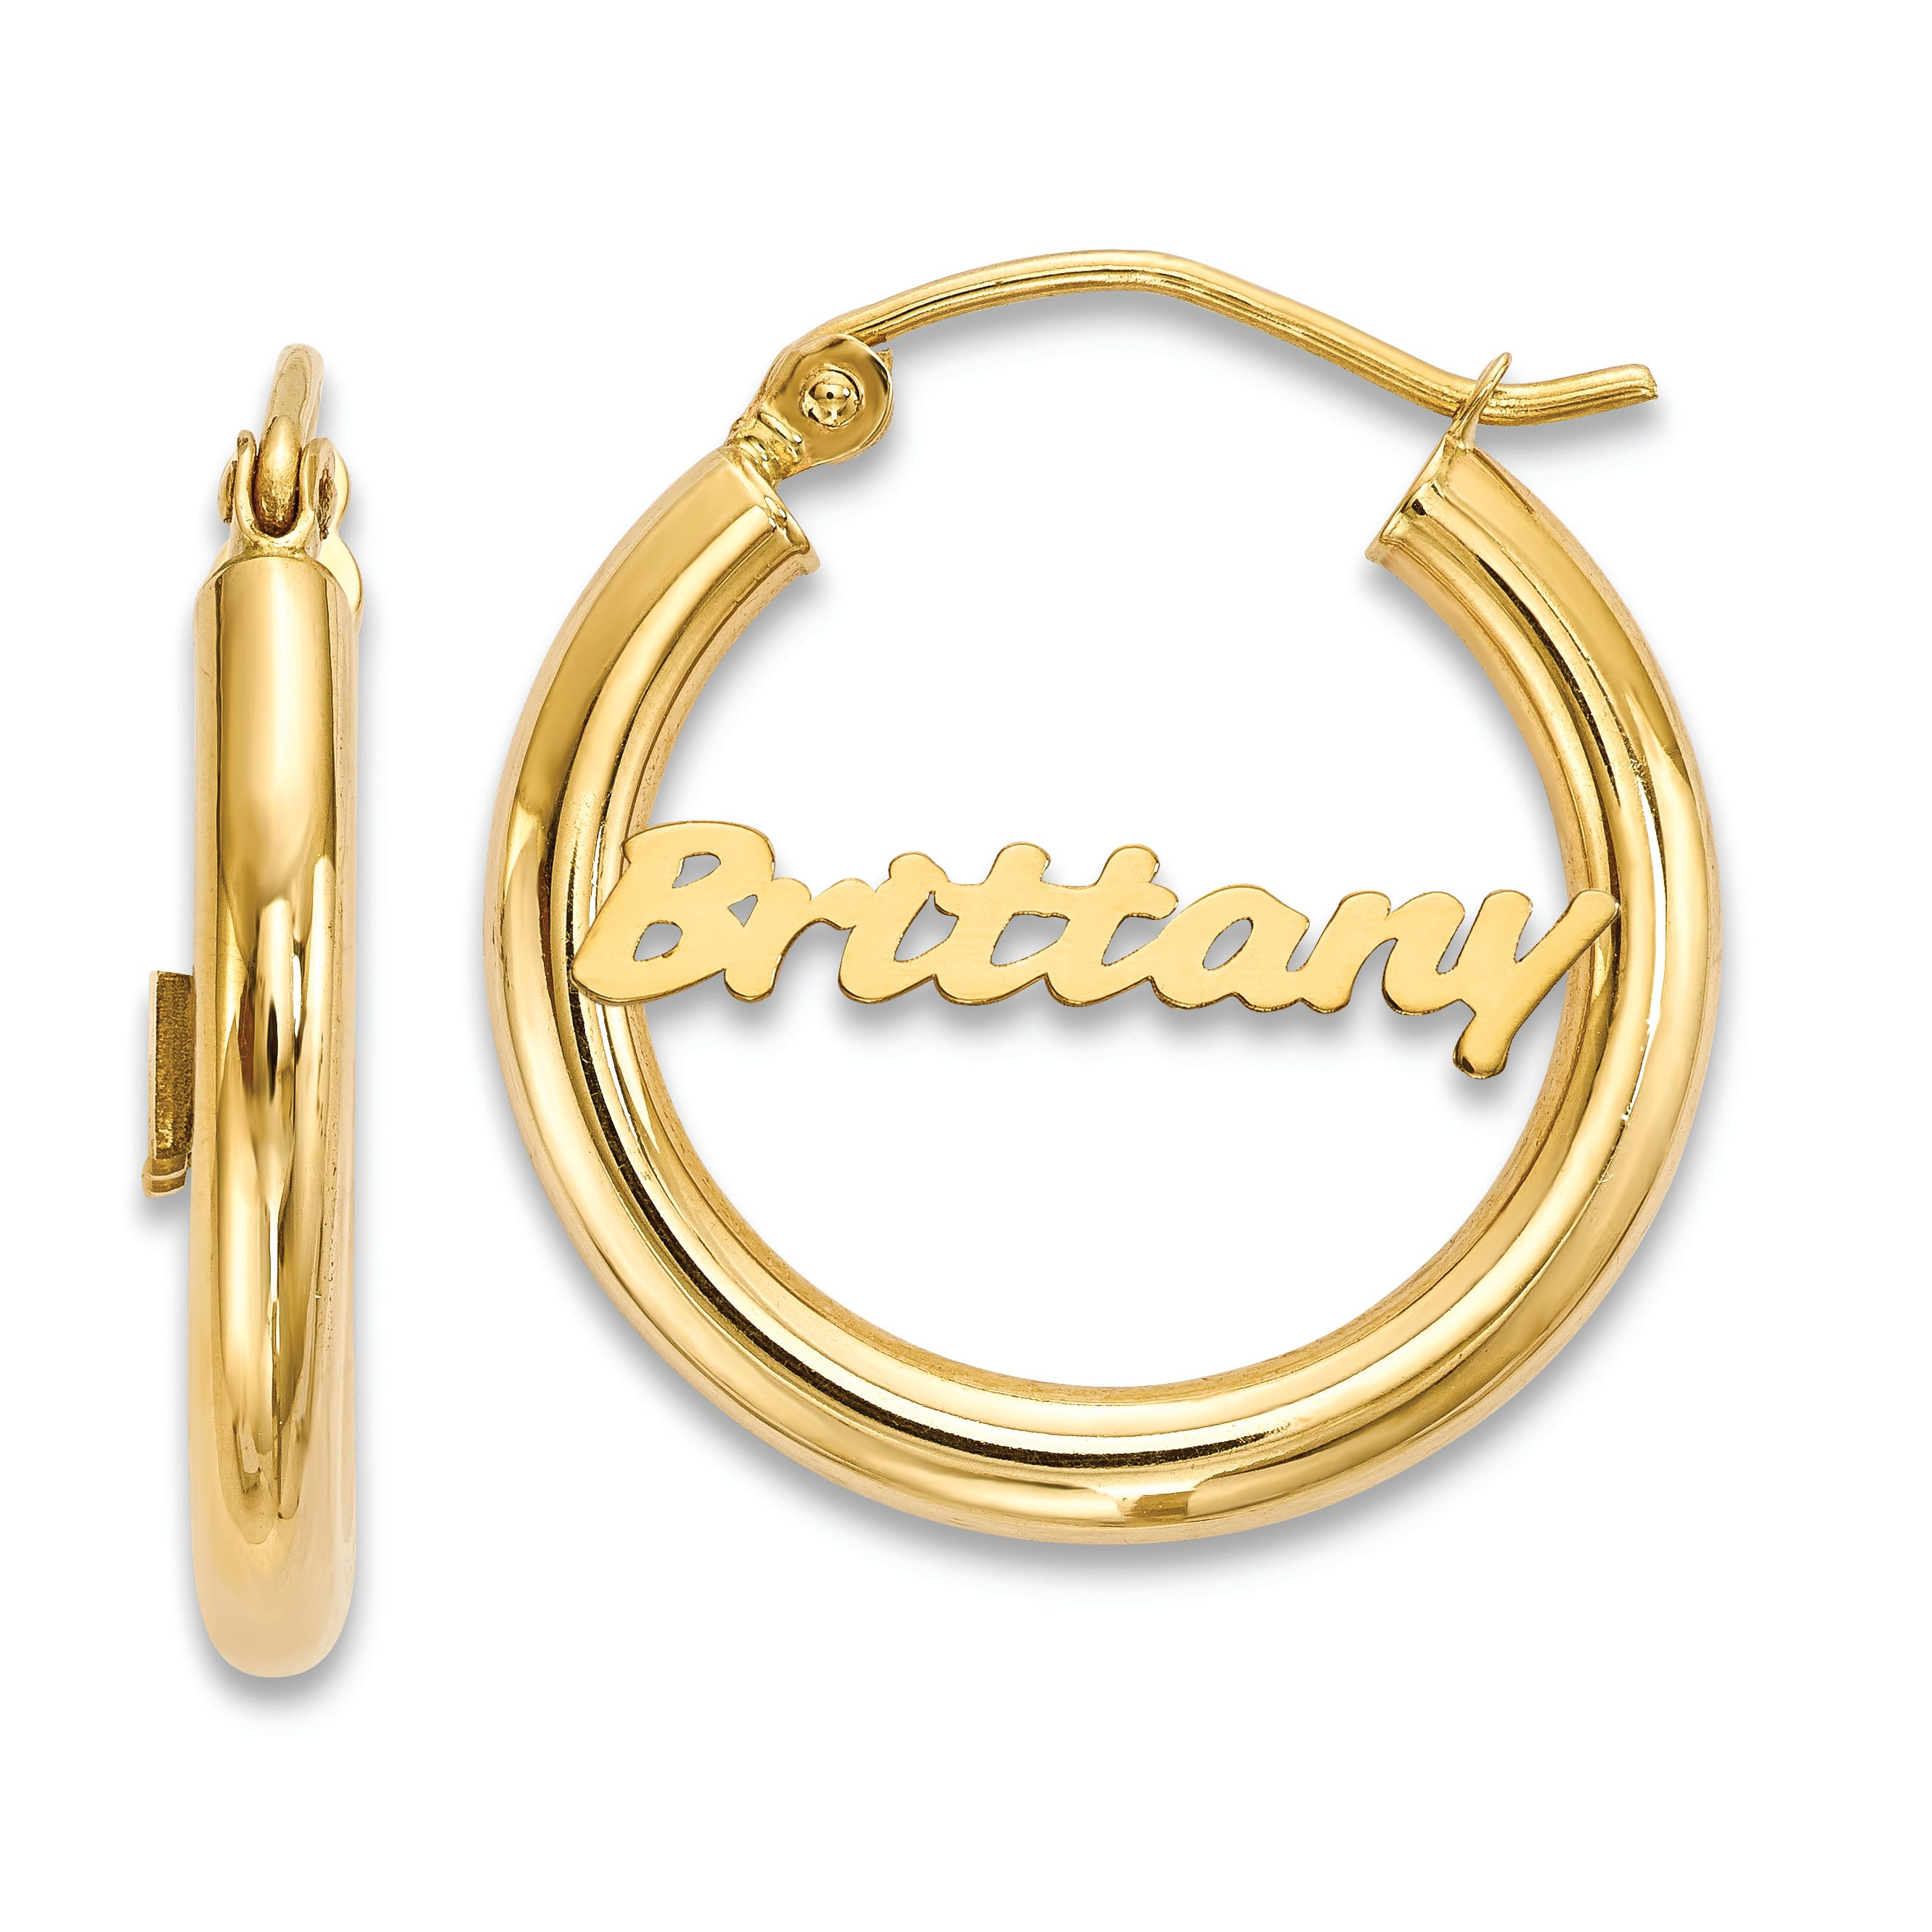 Polished Monogram Tube Earrings in 10k Yellow Gold